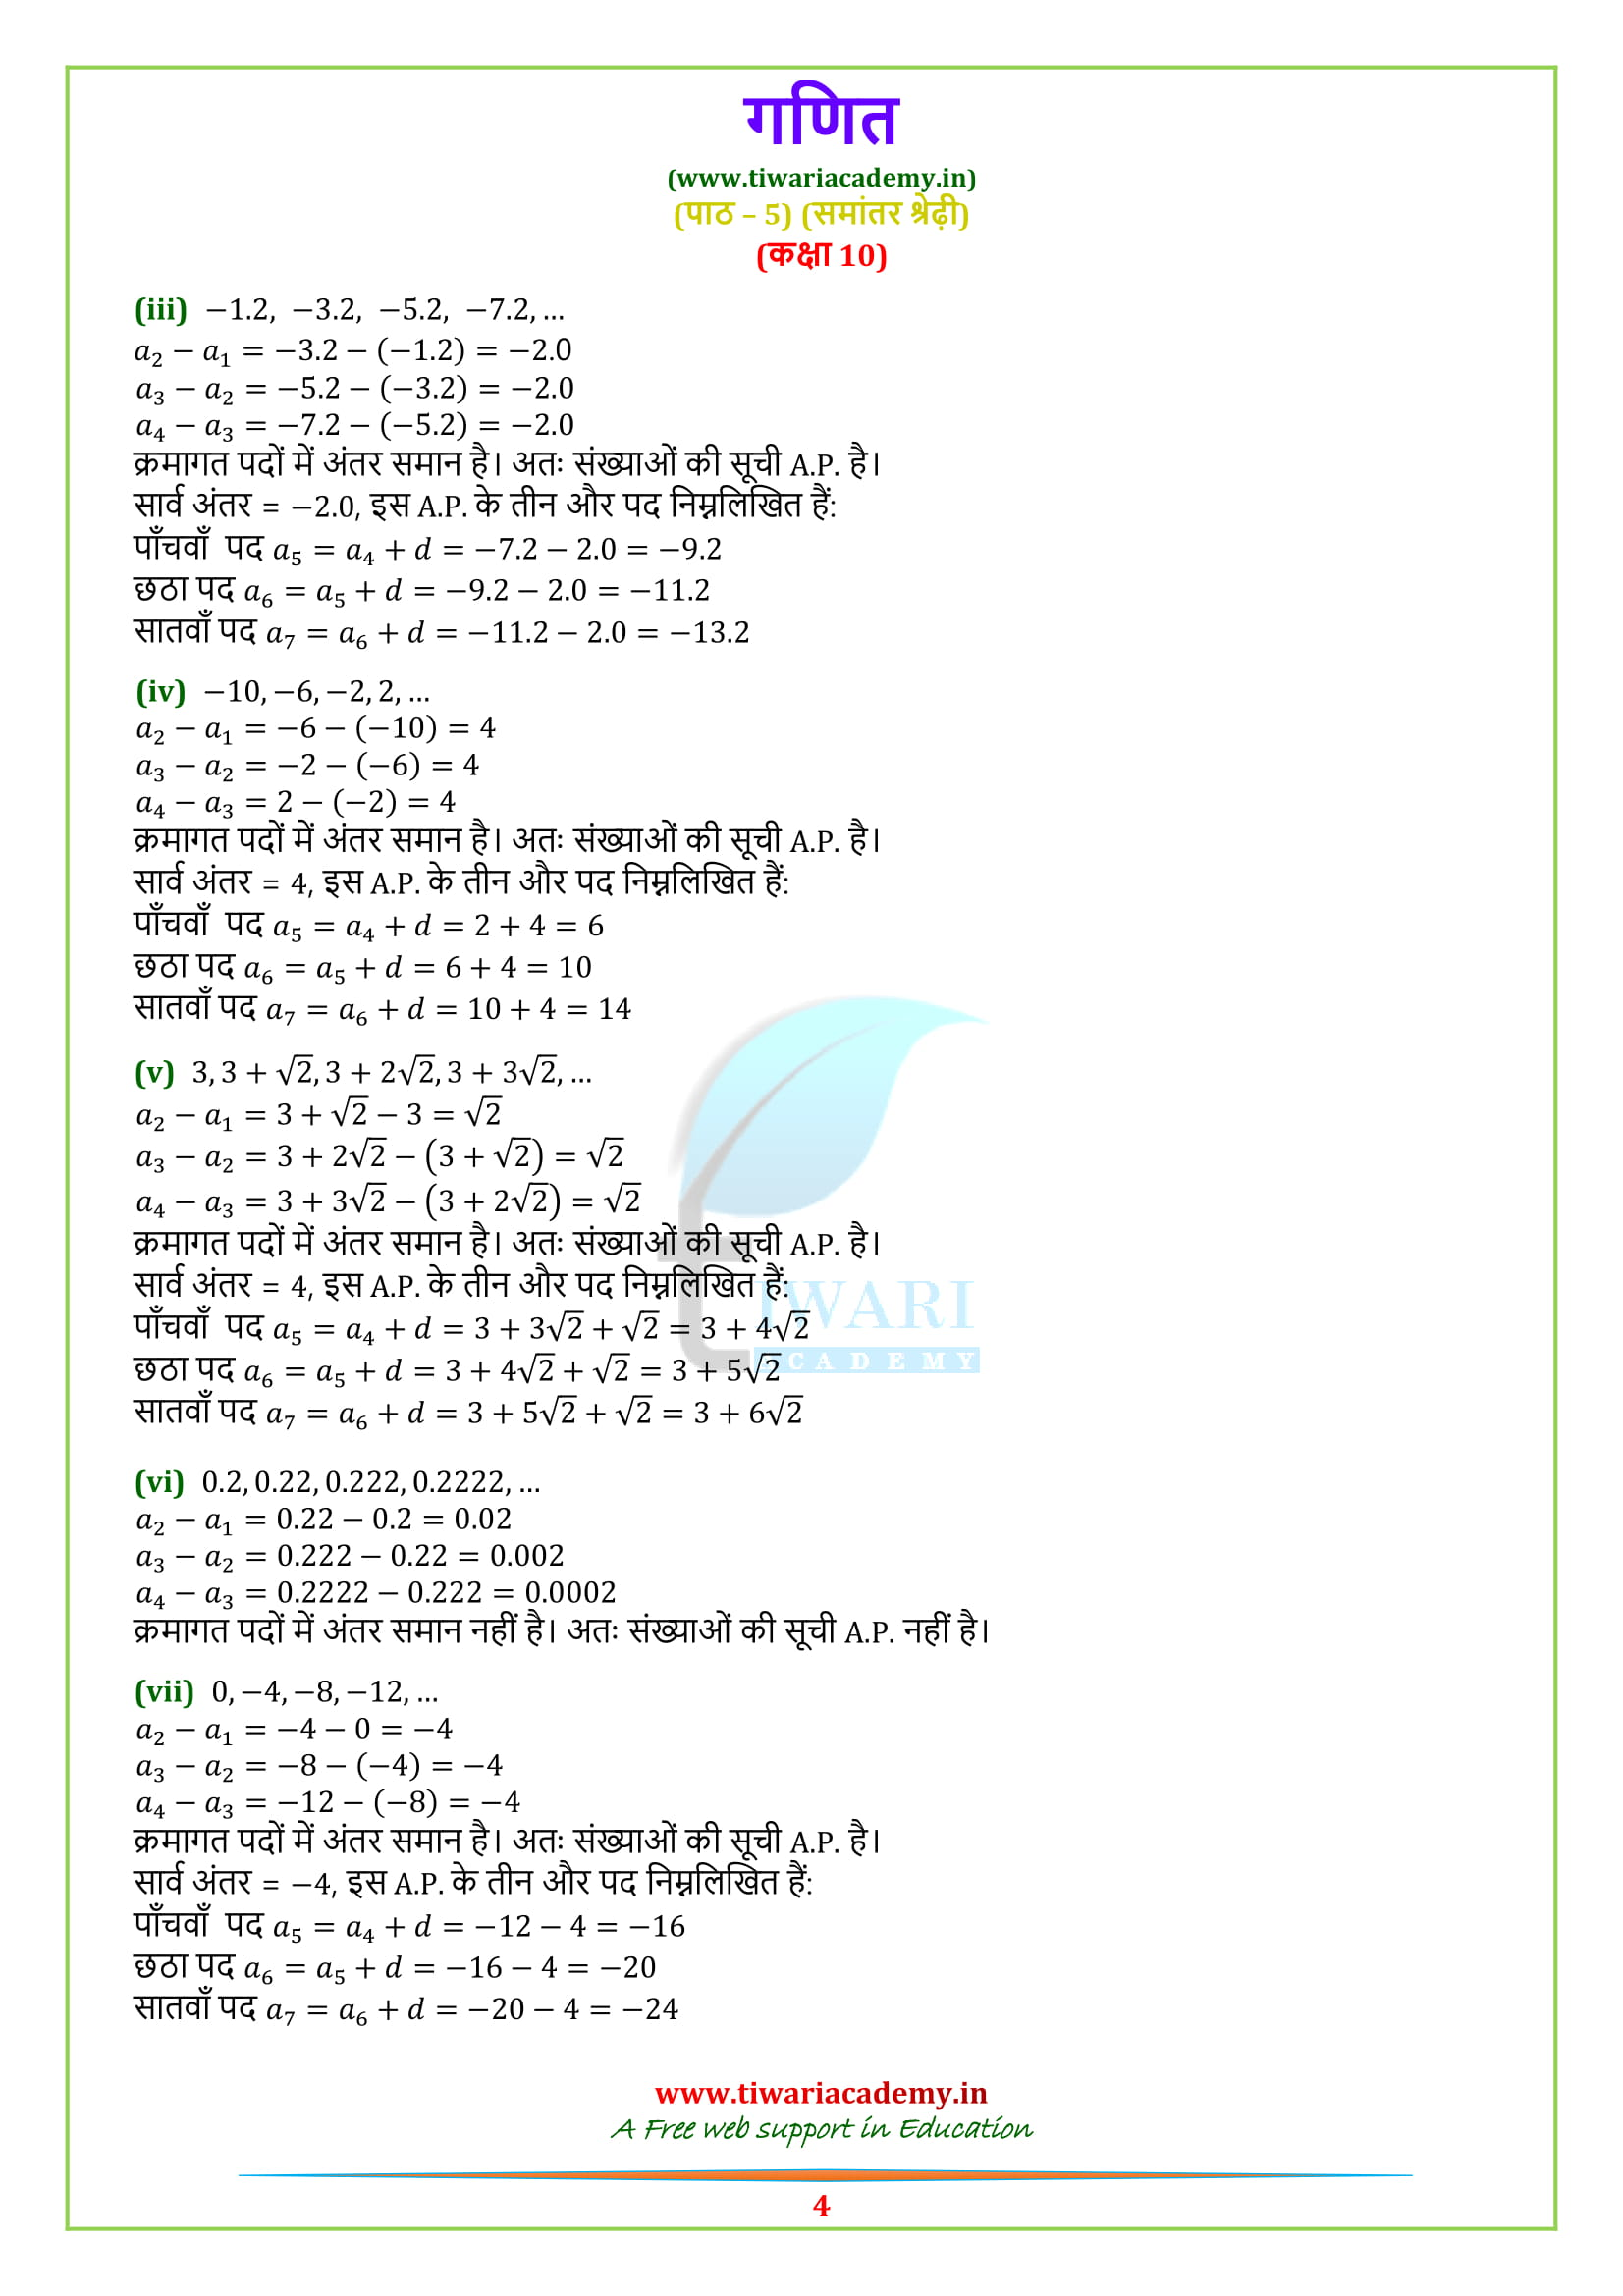 Class 10 Maths Exercise 5.1 Solutions for up board